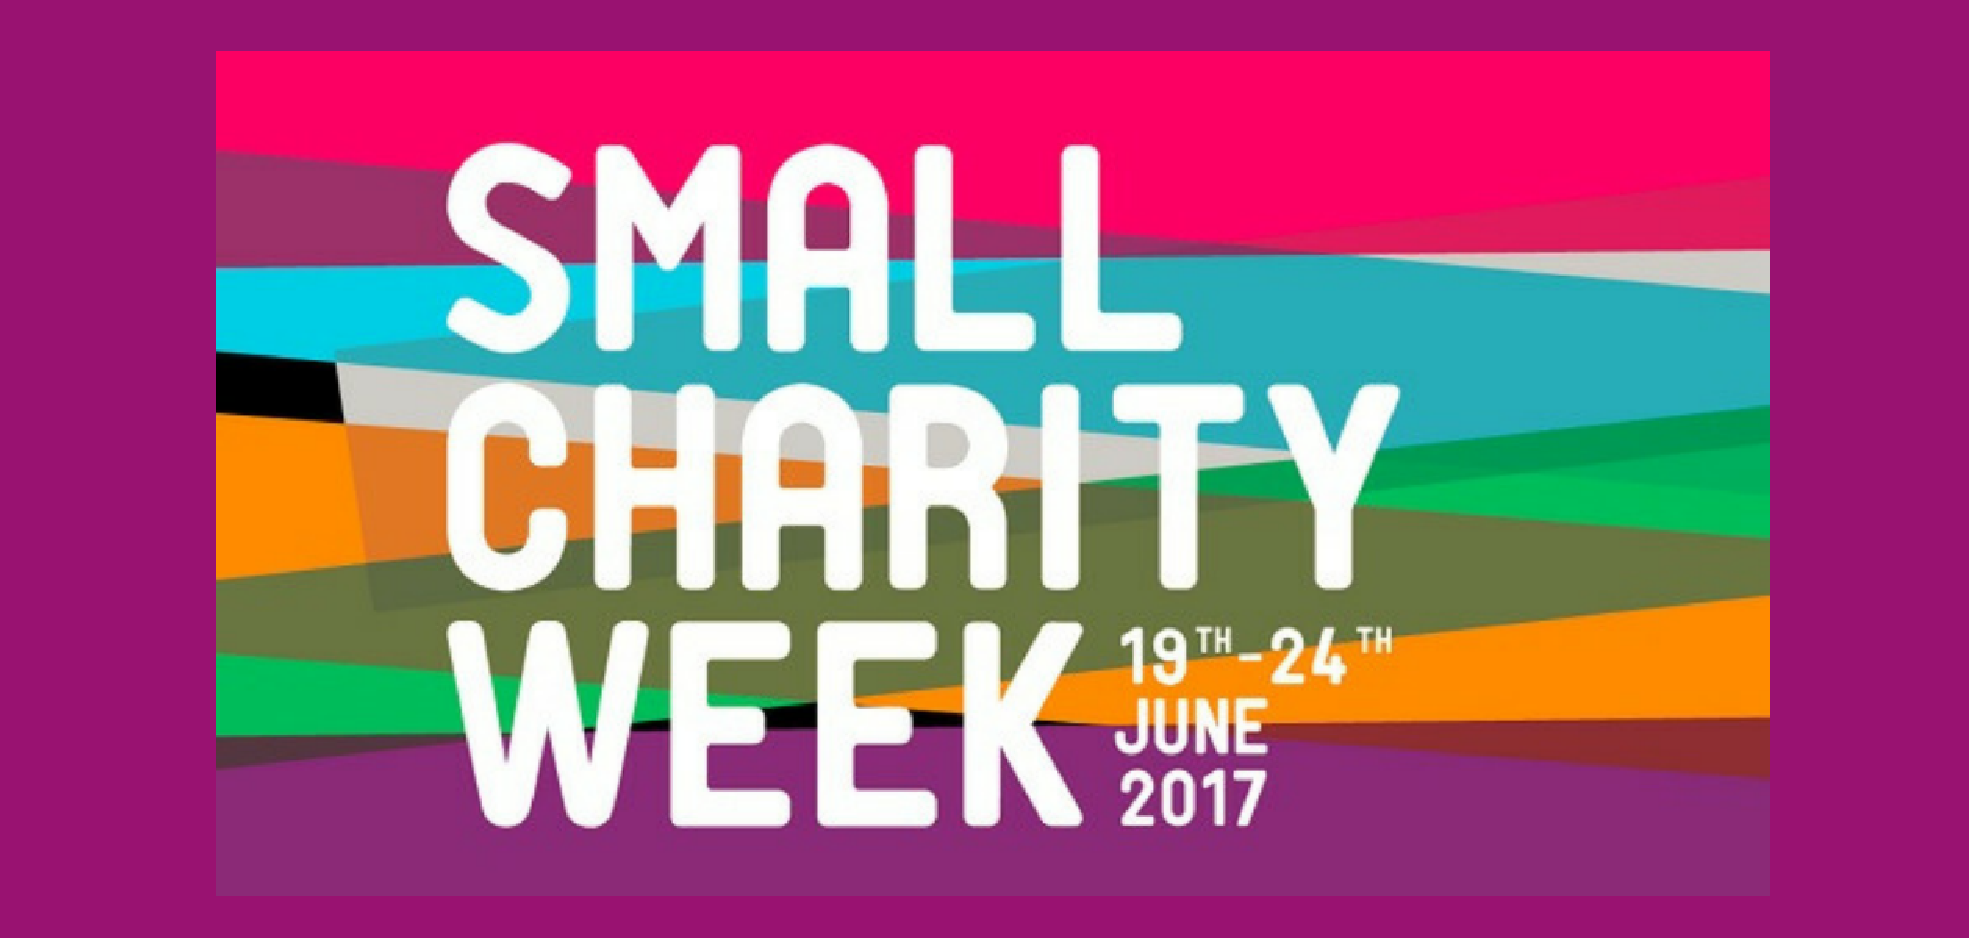 Small Charity Week 2017